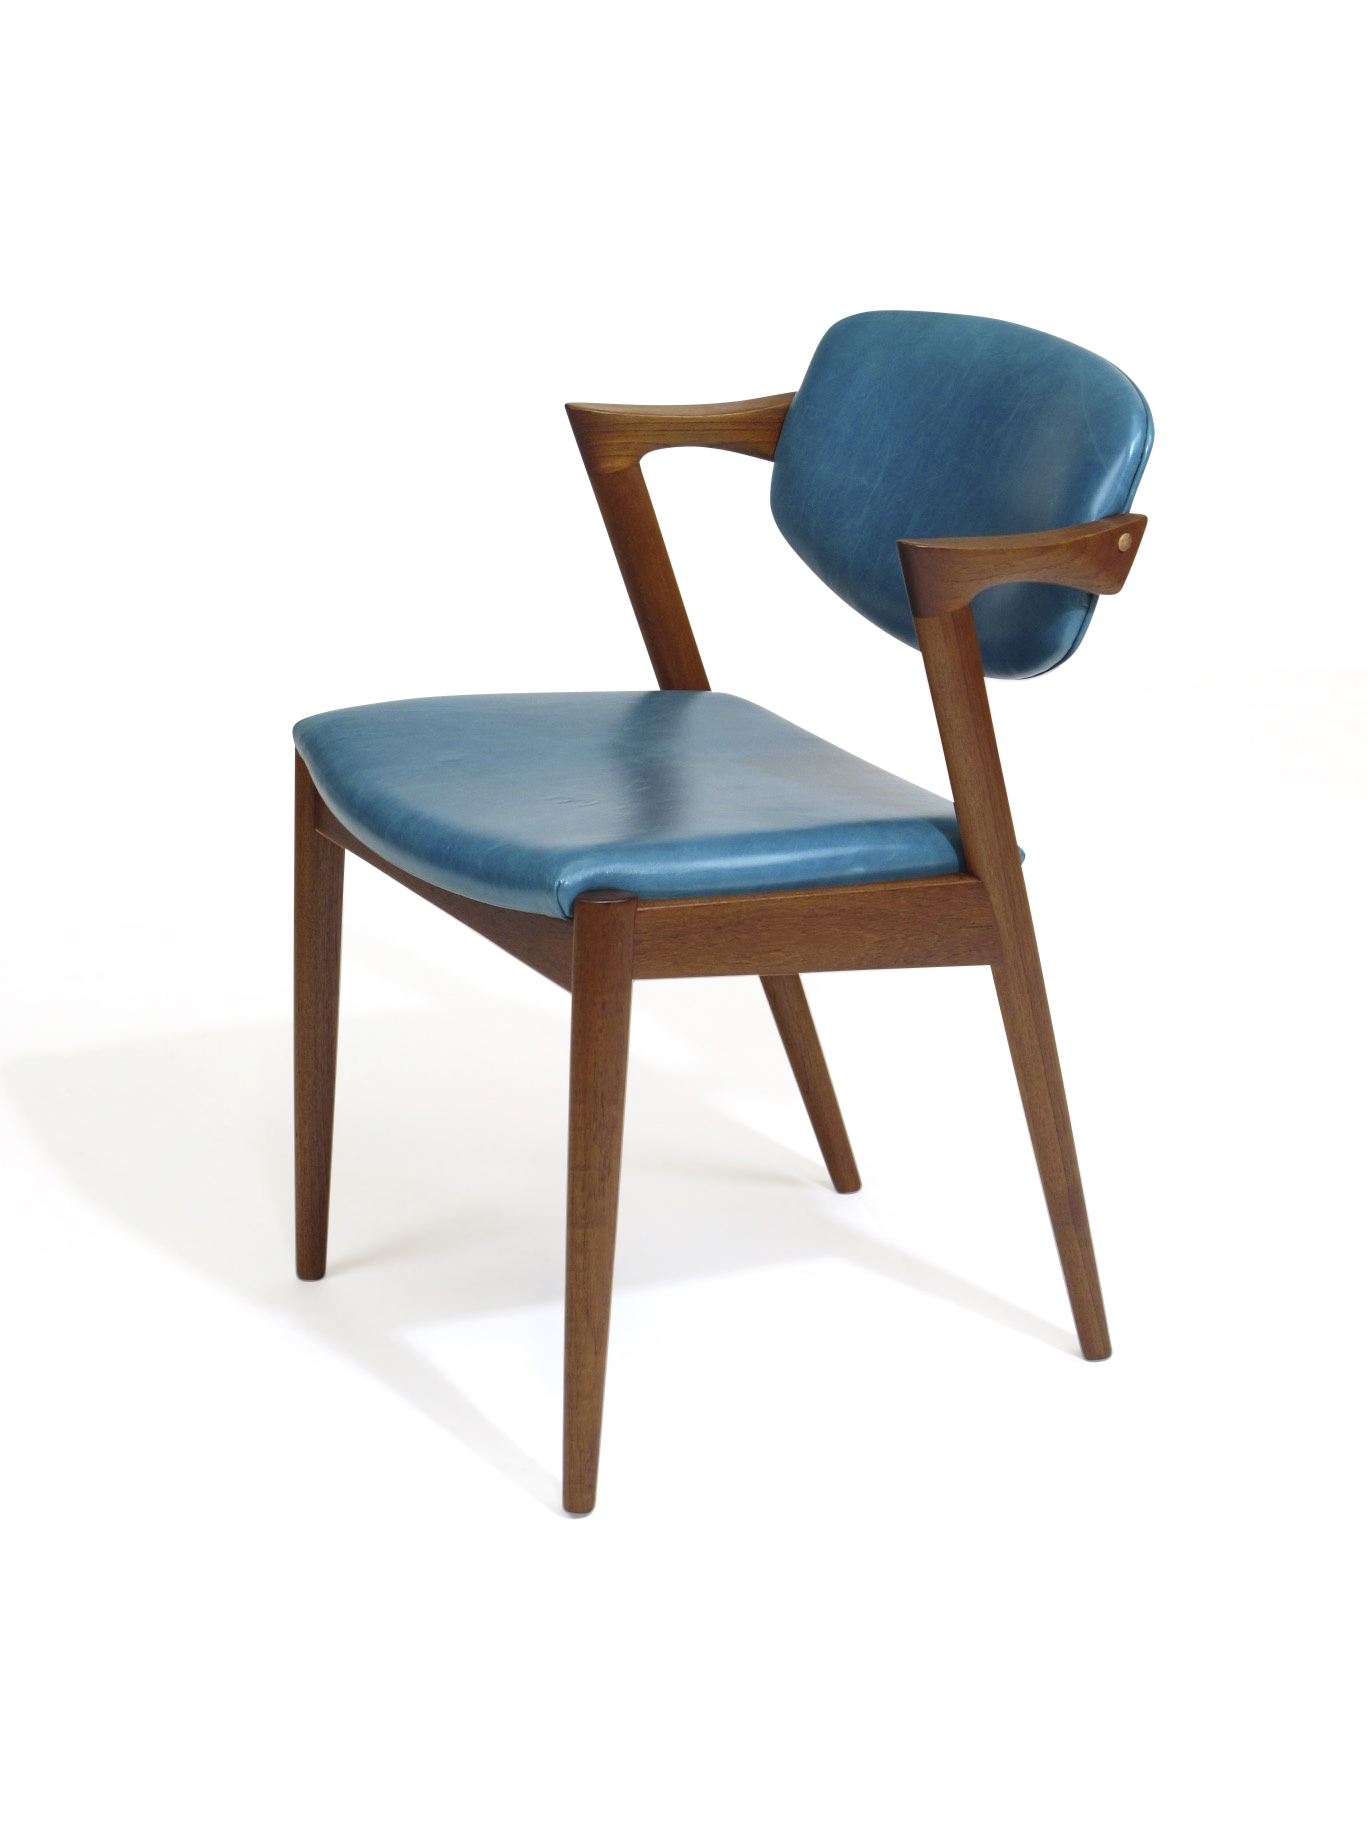 Aqua Dining Chairs Kai Kristiansen Z Dining Chairs In Aqua Blue Leather 24 Available